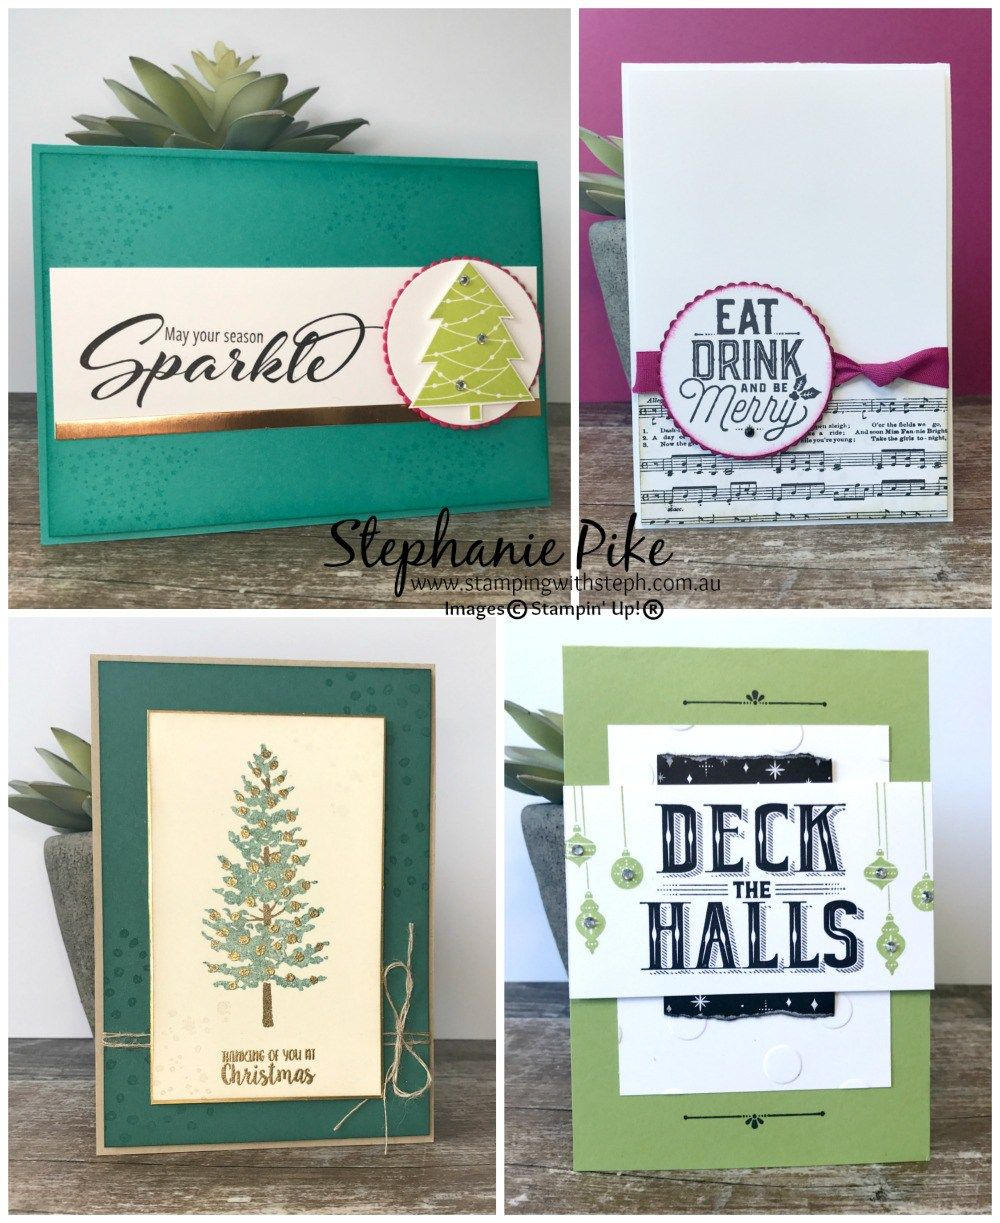 Stephanie Pike - Independent Stampin' Up! Demonstrator Australia